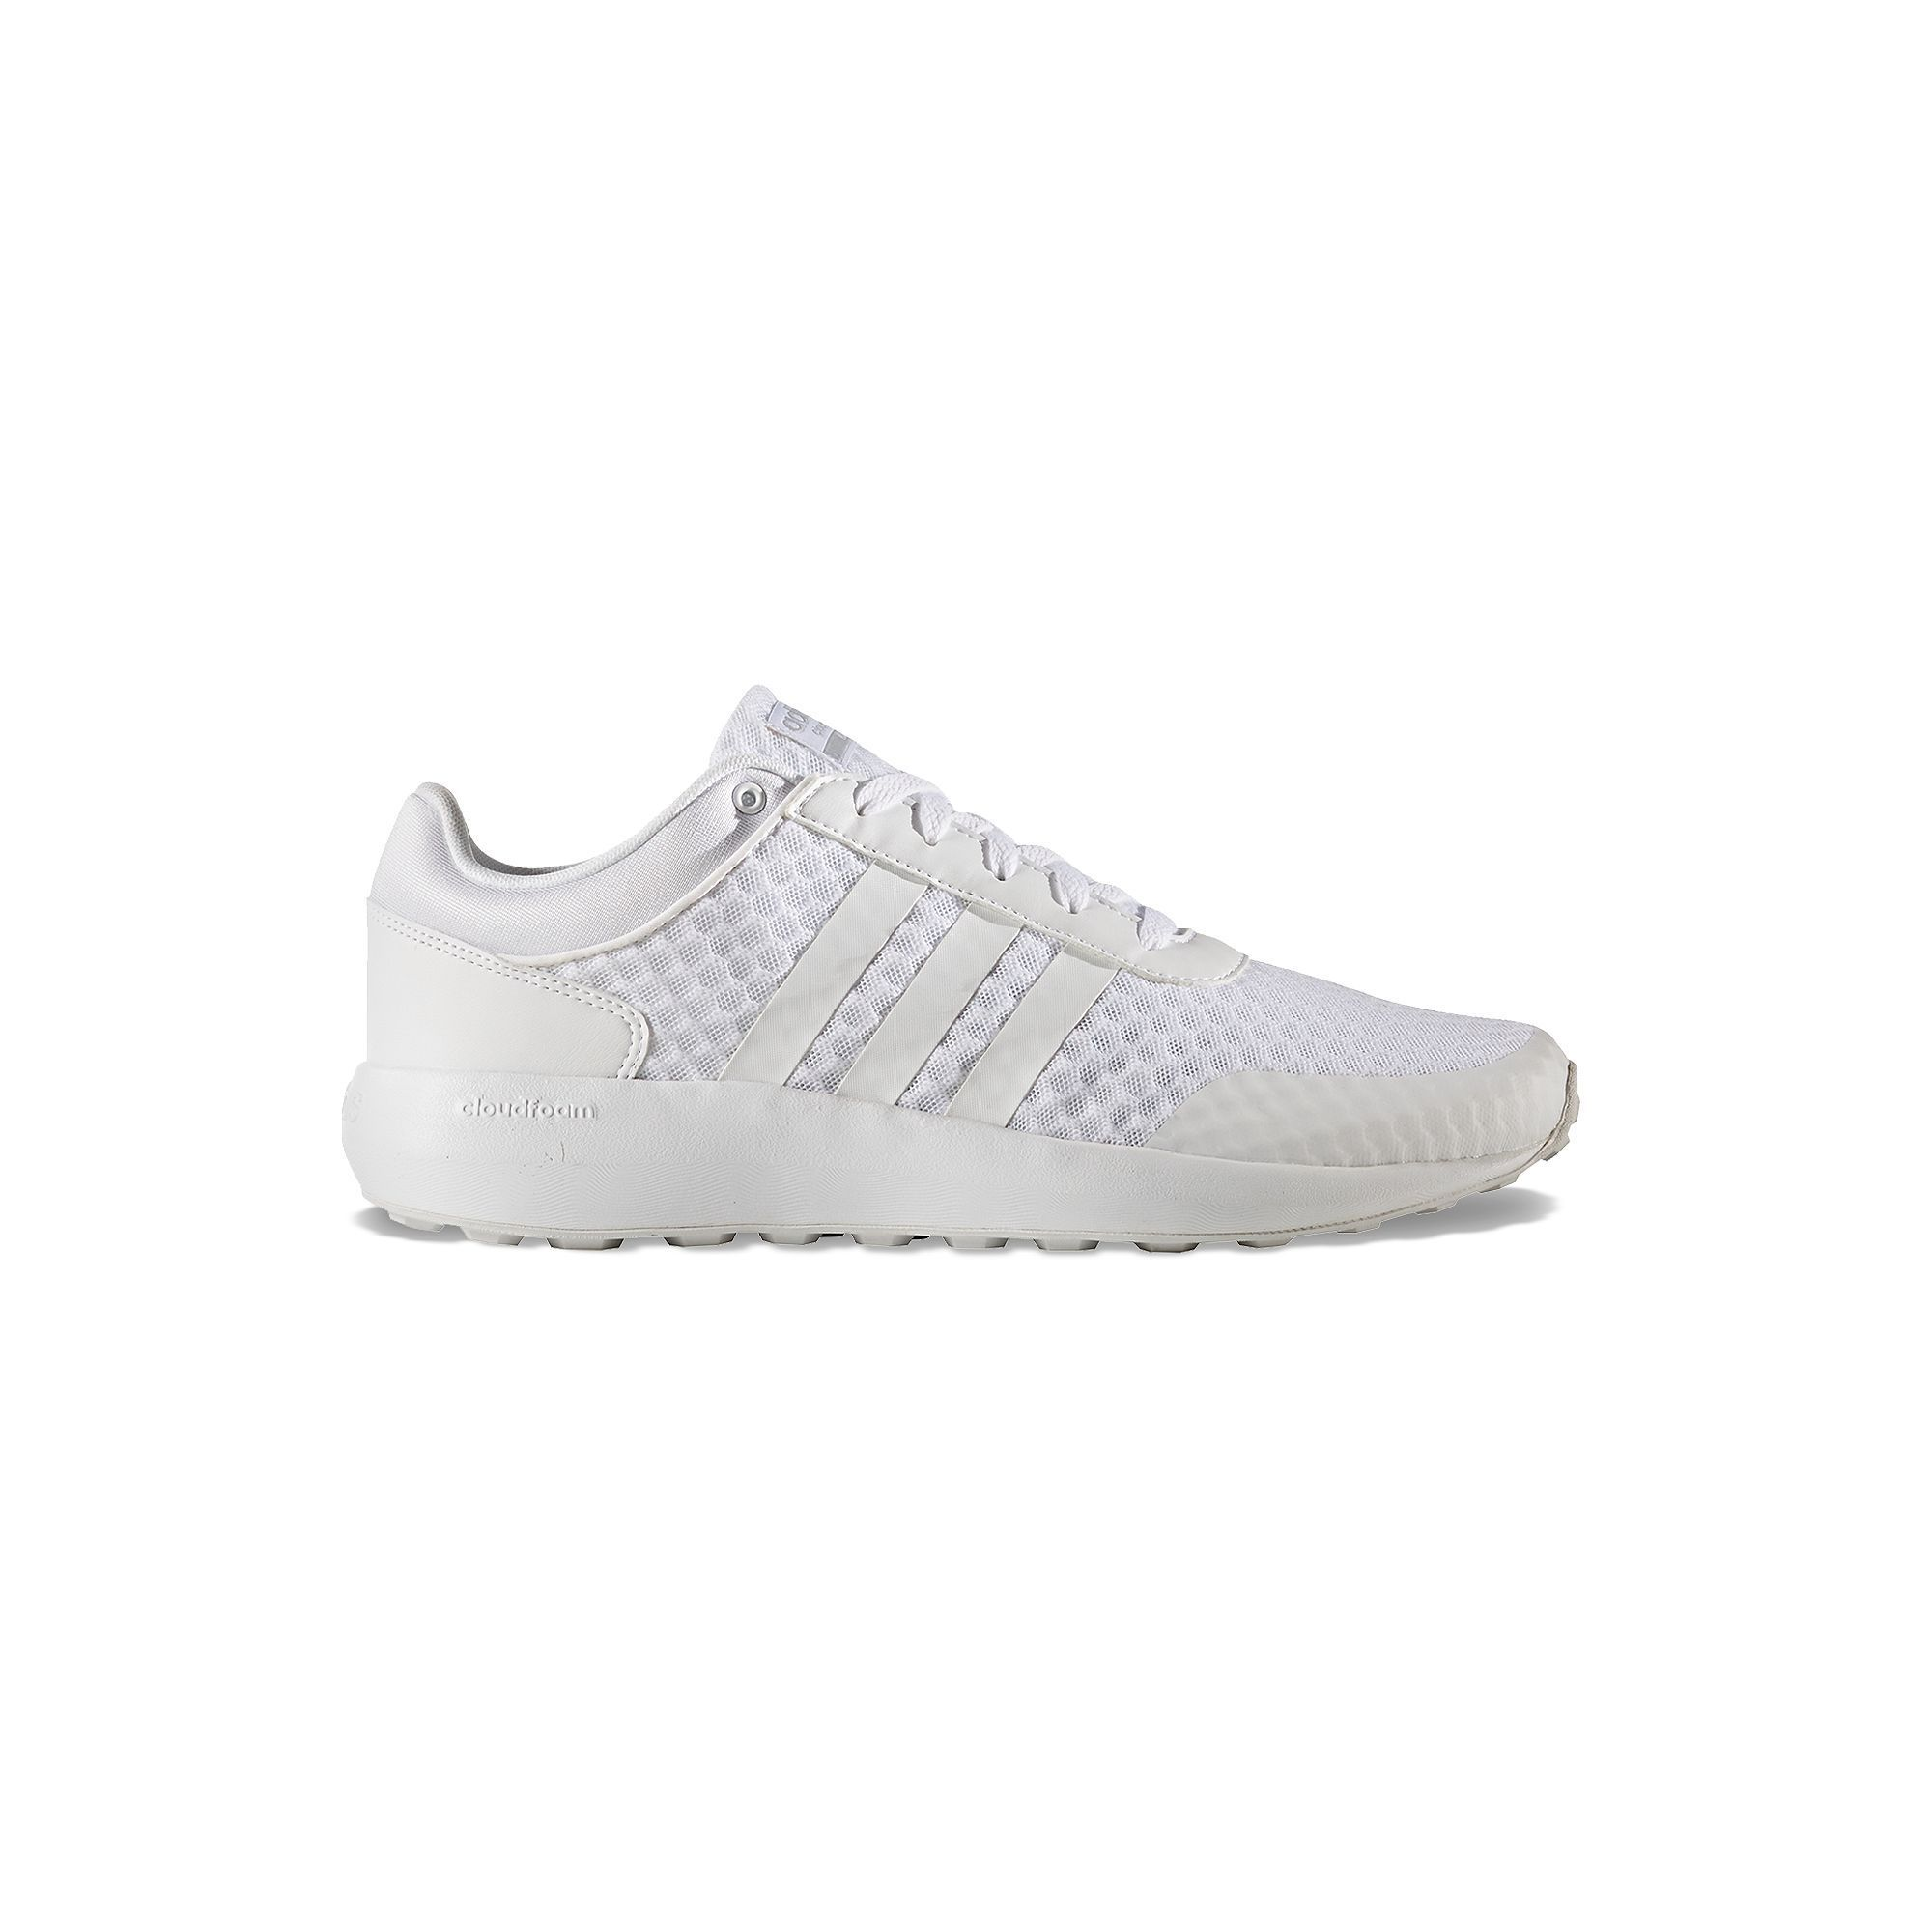 Adidas NEO Cloudfoam Race Men's Sneakers, Size: 12, White